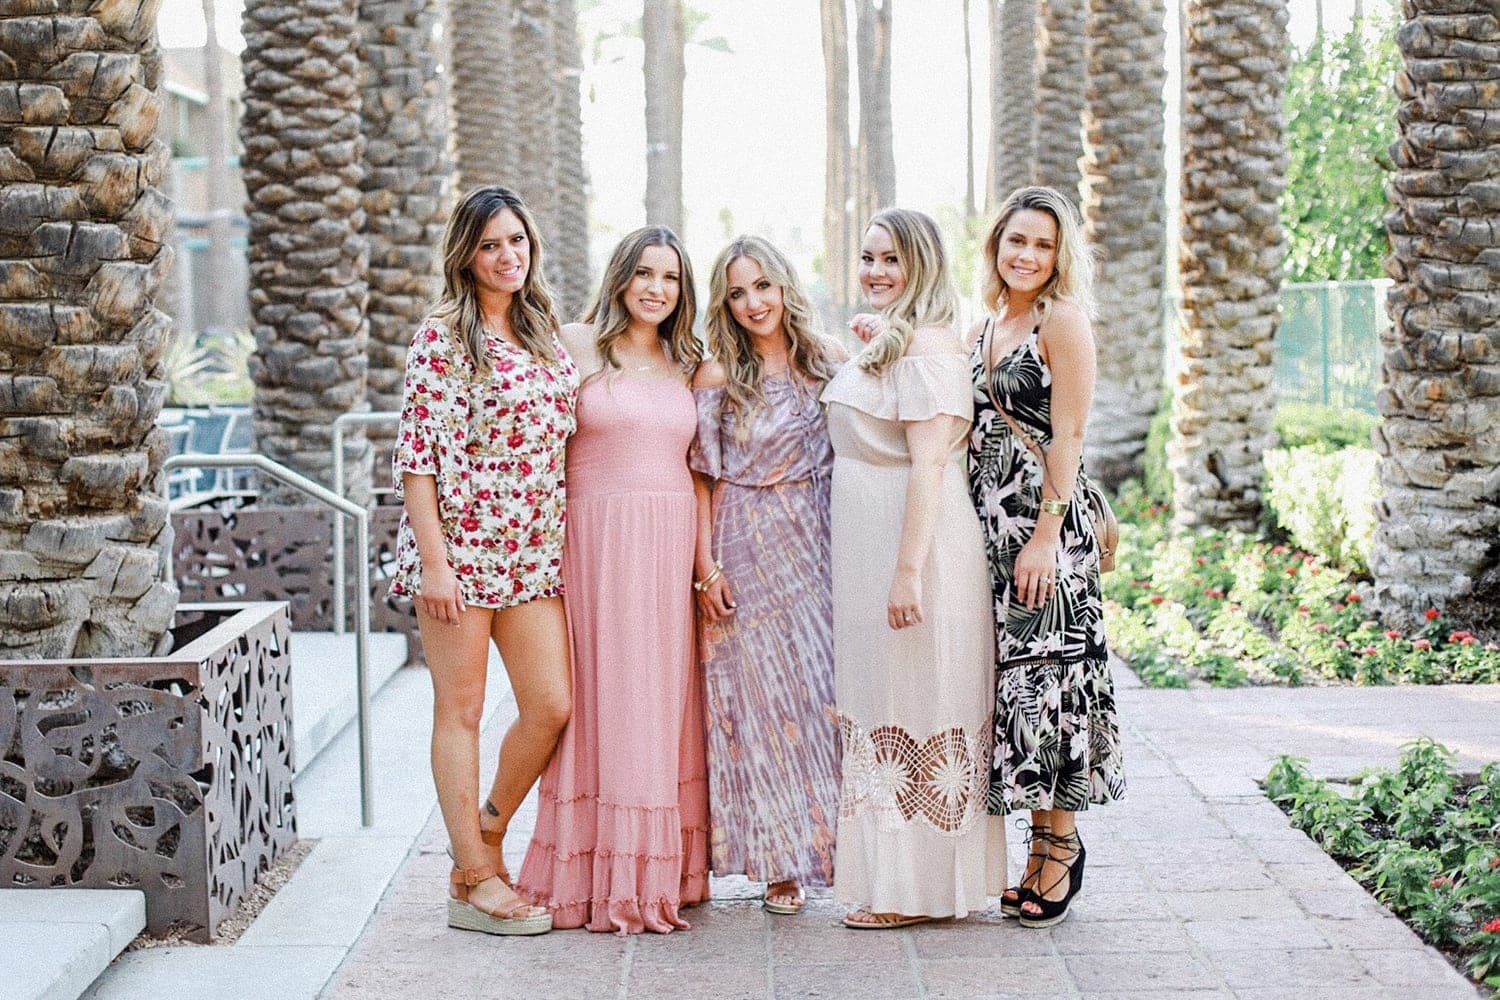 Girls weekend in Scottsdale, Arizona - Hyatt Regency at Gainey Ranch - travel guide by Meg O. on the Go